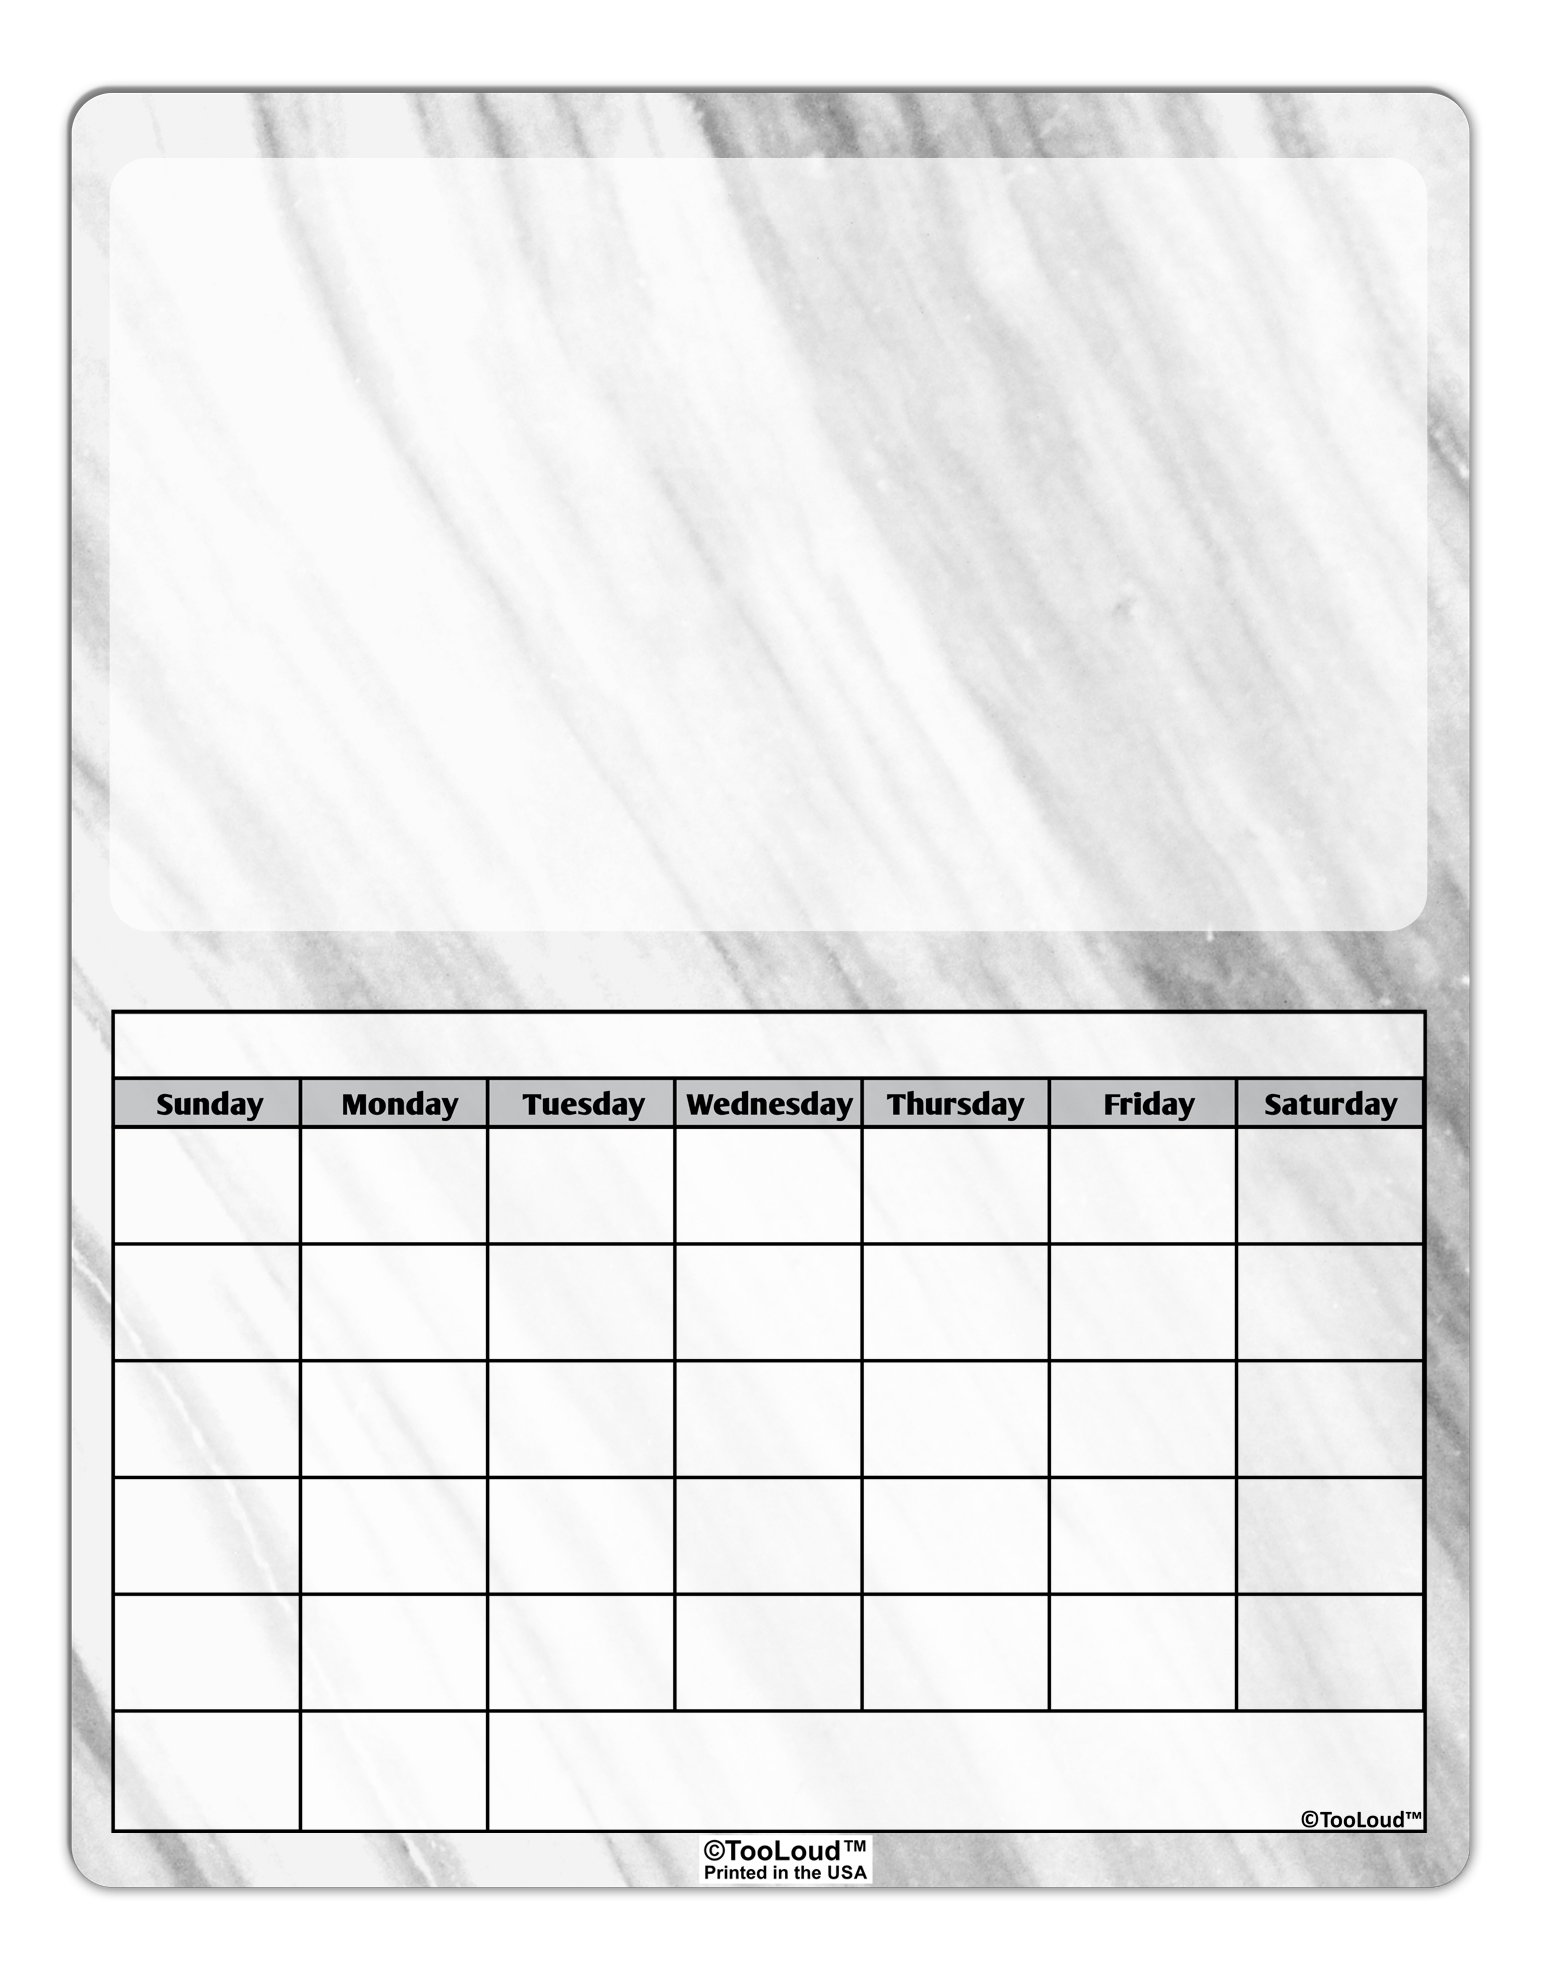 TooLoud White Marble Pattern Blank Calendar Dry Erase Board All Over Print